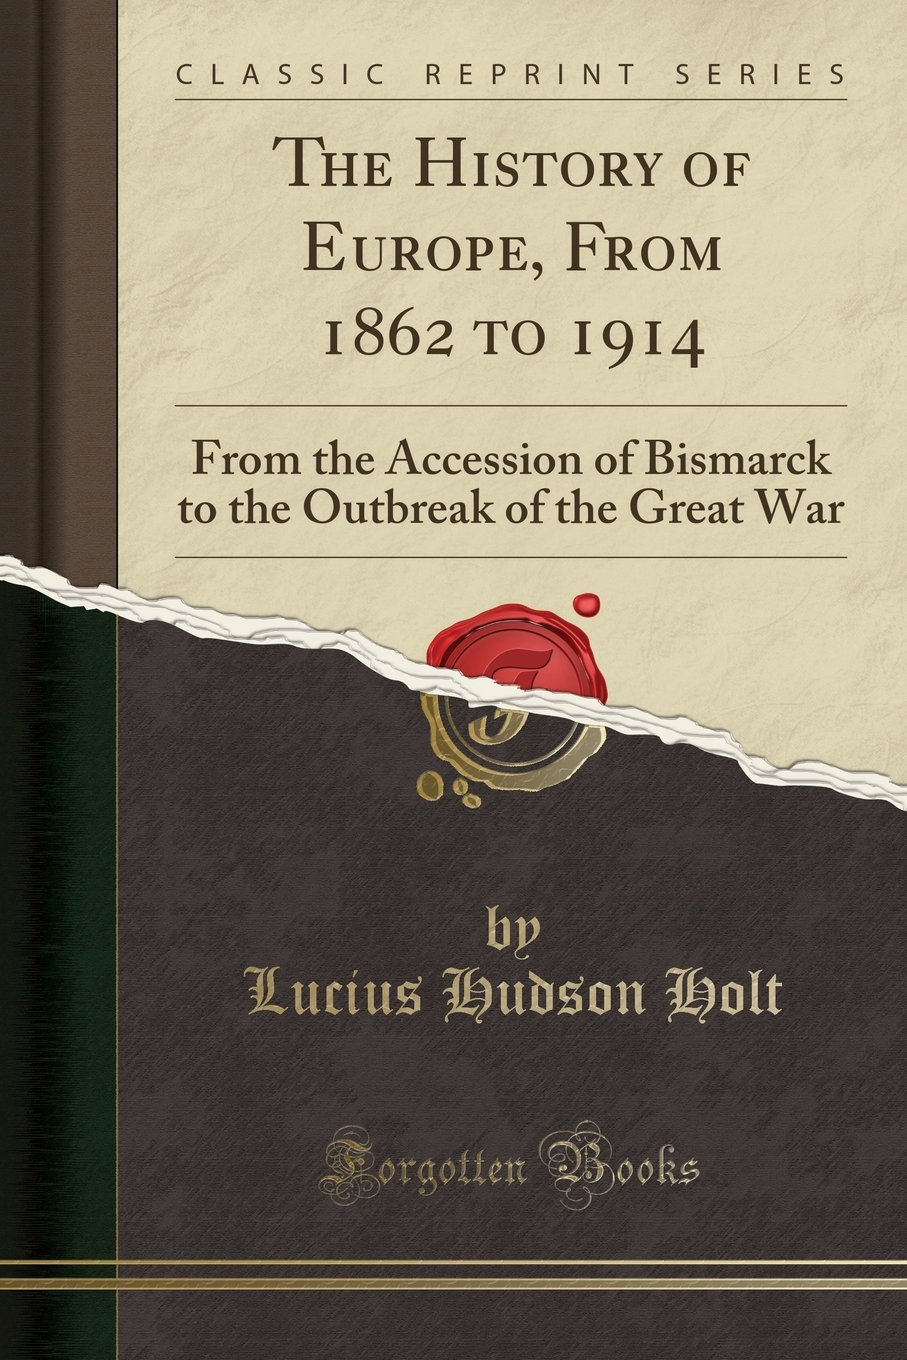 Download The History of Europe, From 1862 to 1914: From the Accession of Bismarck to the Outbreak of the Great War (Classic Reprint) PDF